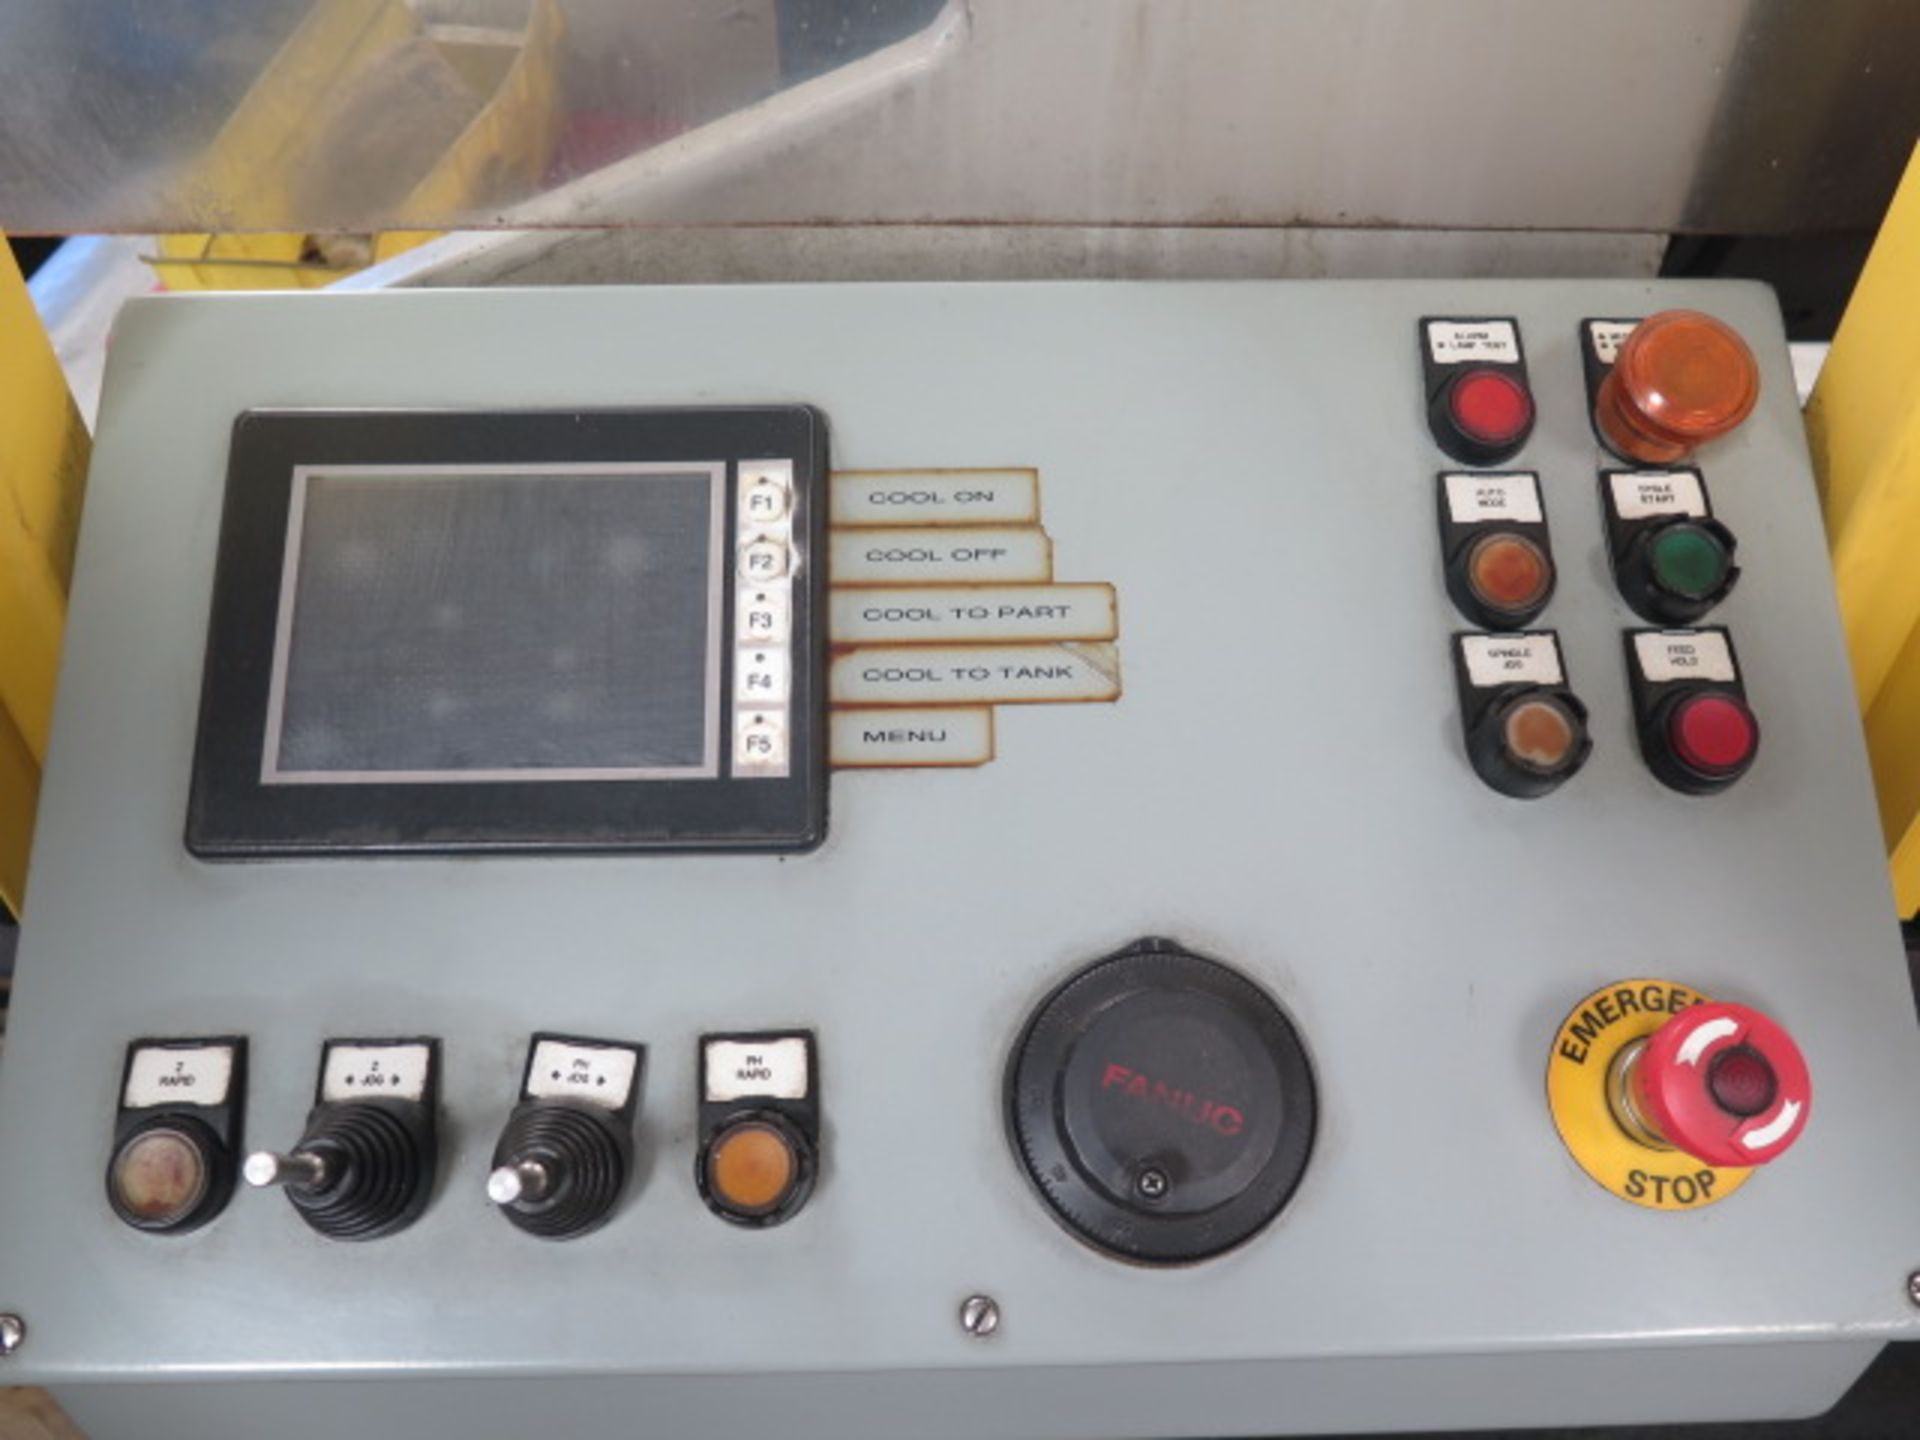 Laker-Craven-100 CNC Deep Hole Drilling Machine s/n 1241 w/ Fanuc Power MATE Controls, SOLD AS IS - Image 7 of 41